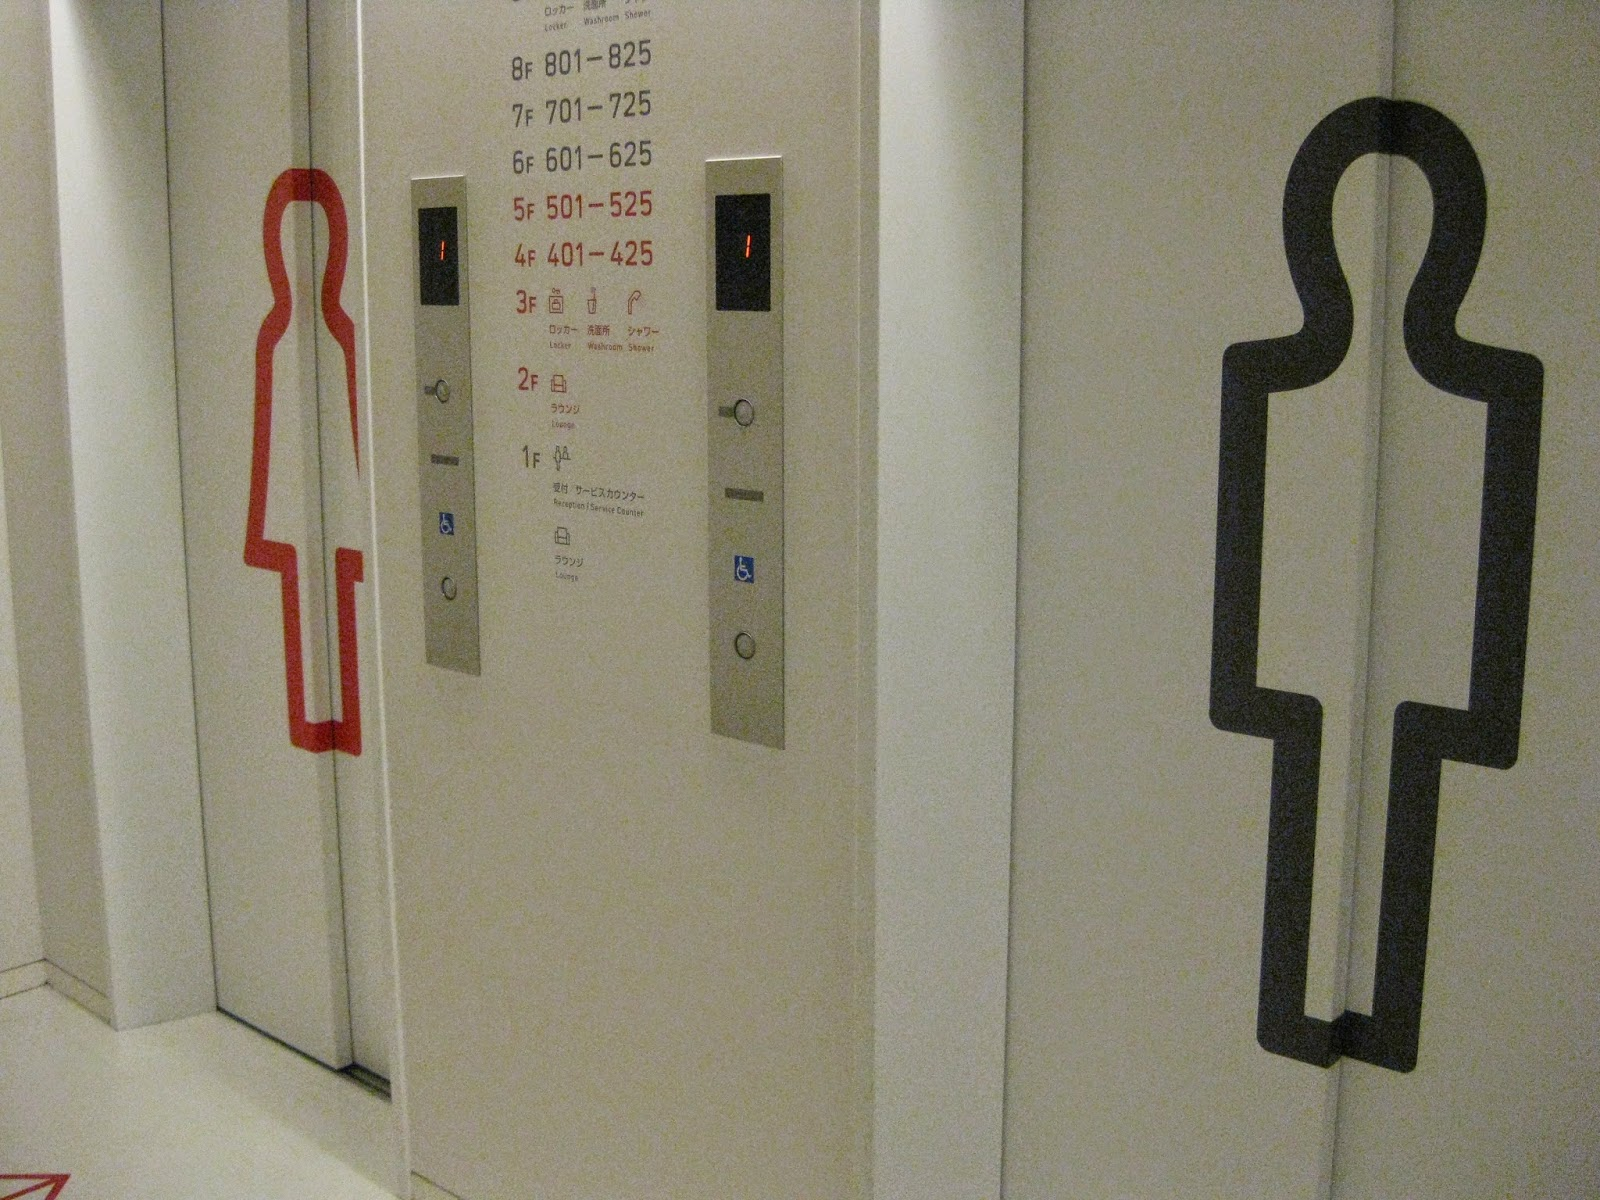 Kyoto - Men and women take separate elevators to men-only and women-only floors